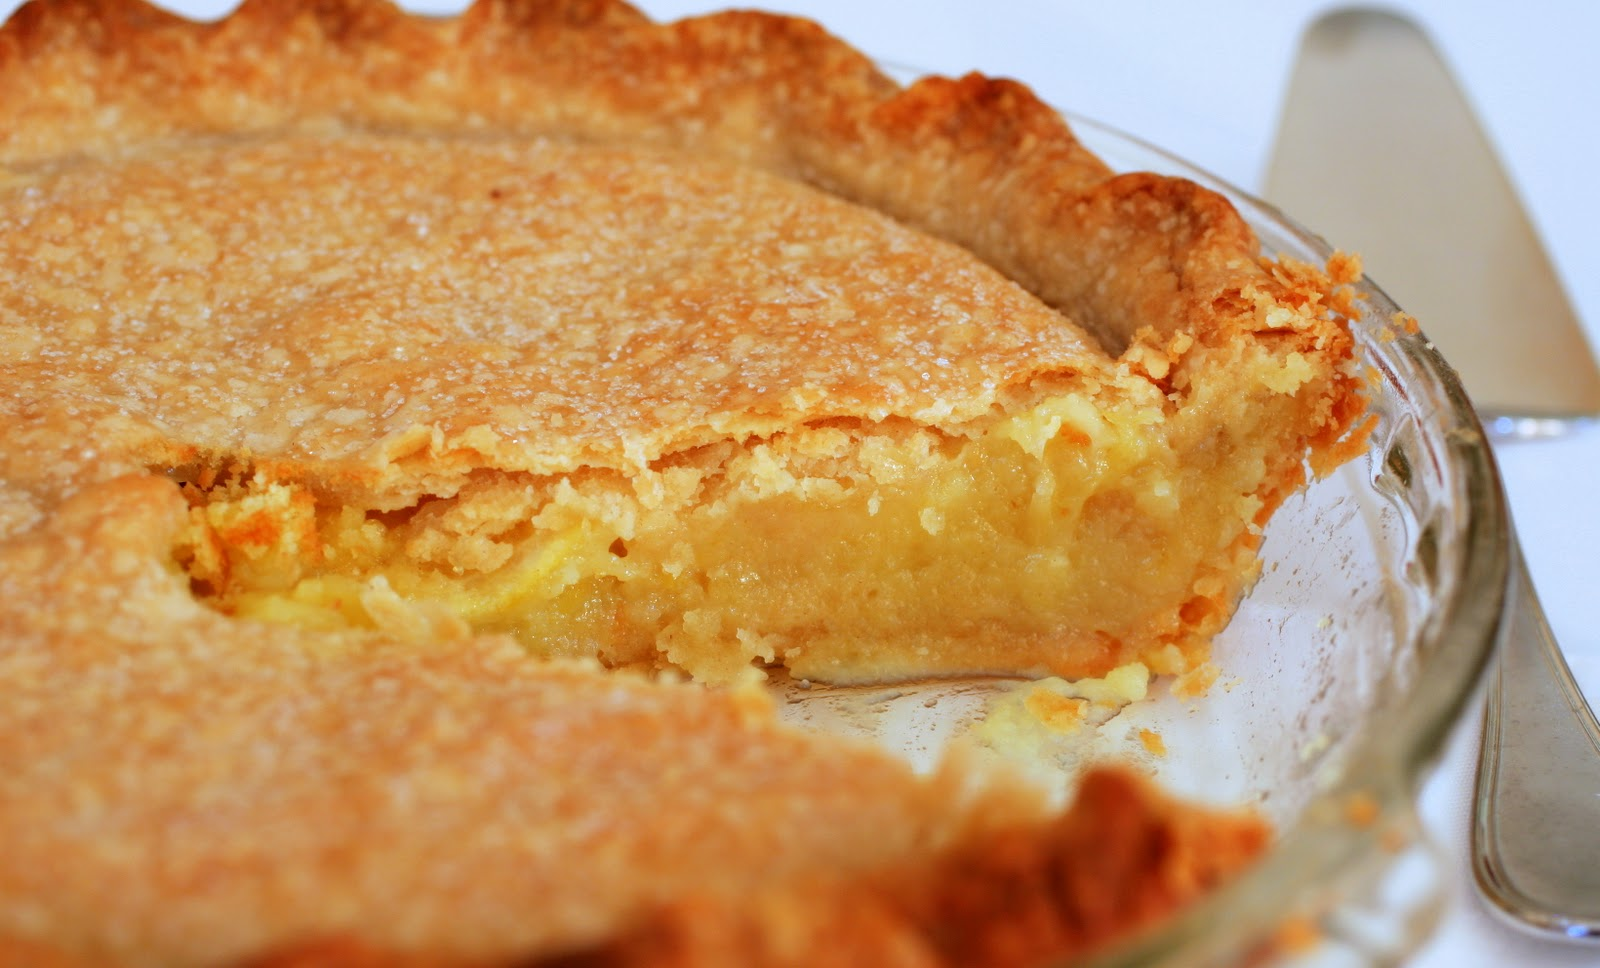 Tish Boyle Sweet Dreams: Ohio Shaker Lemon Pie